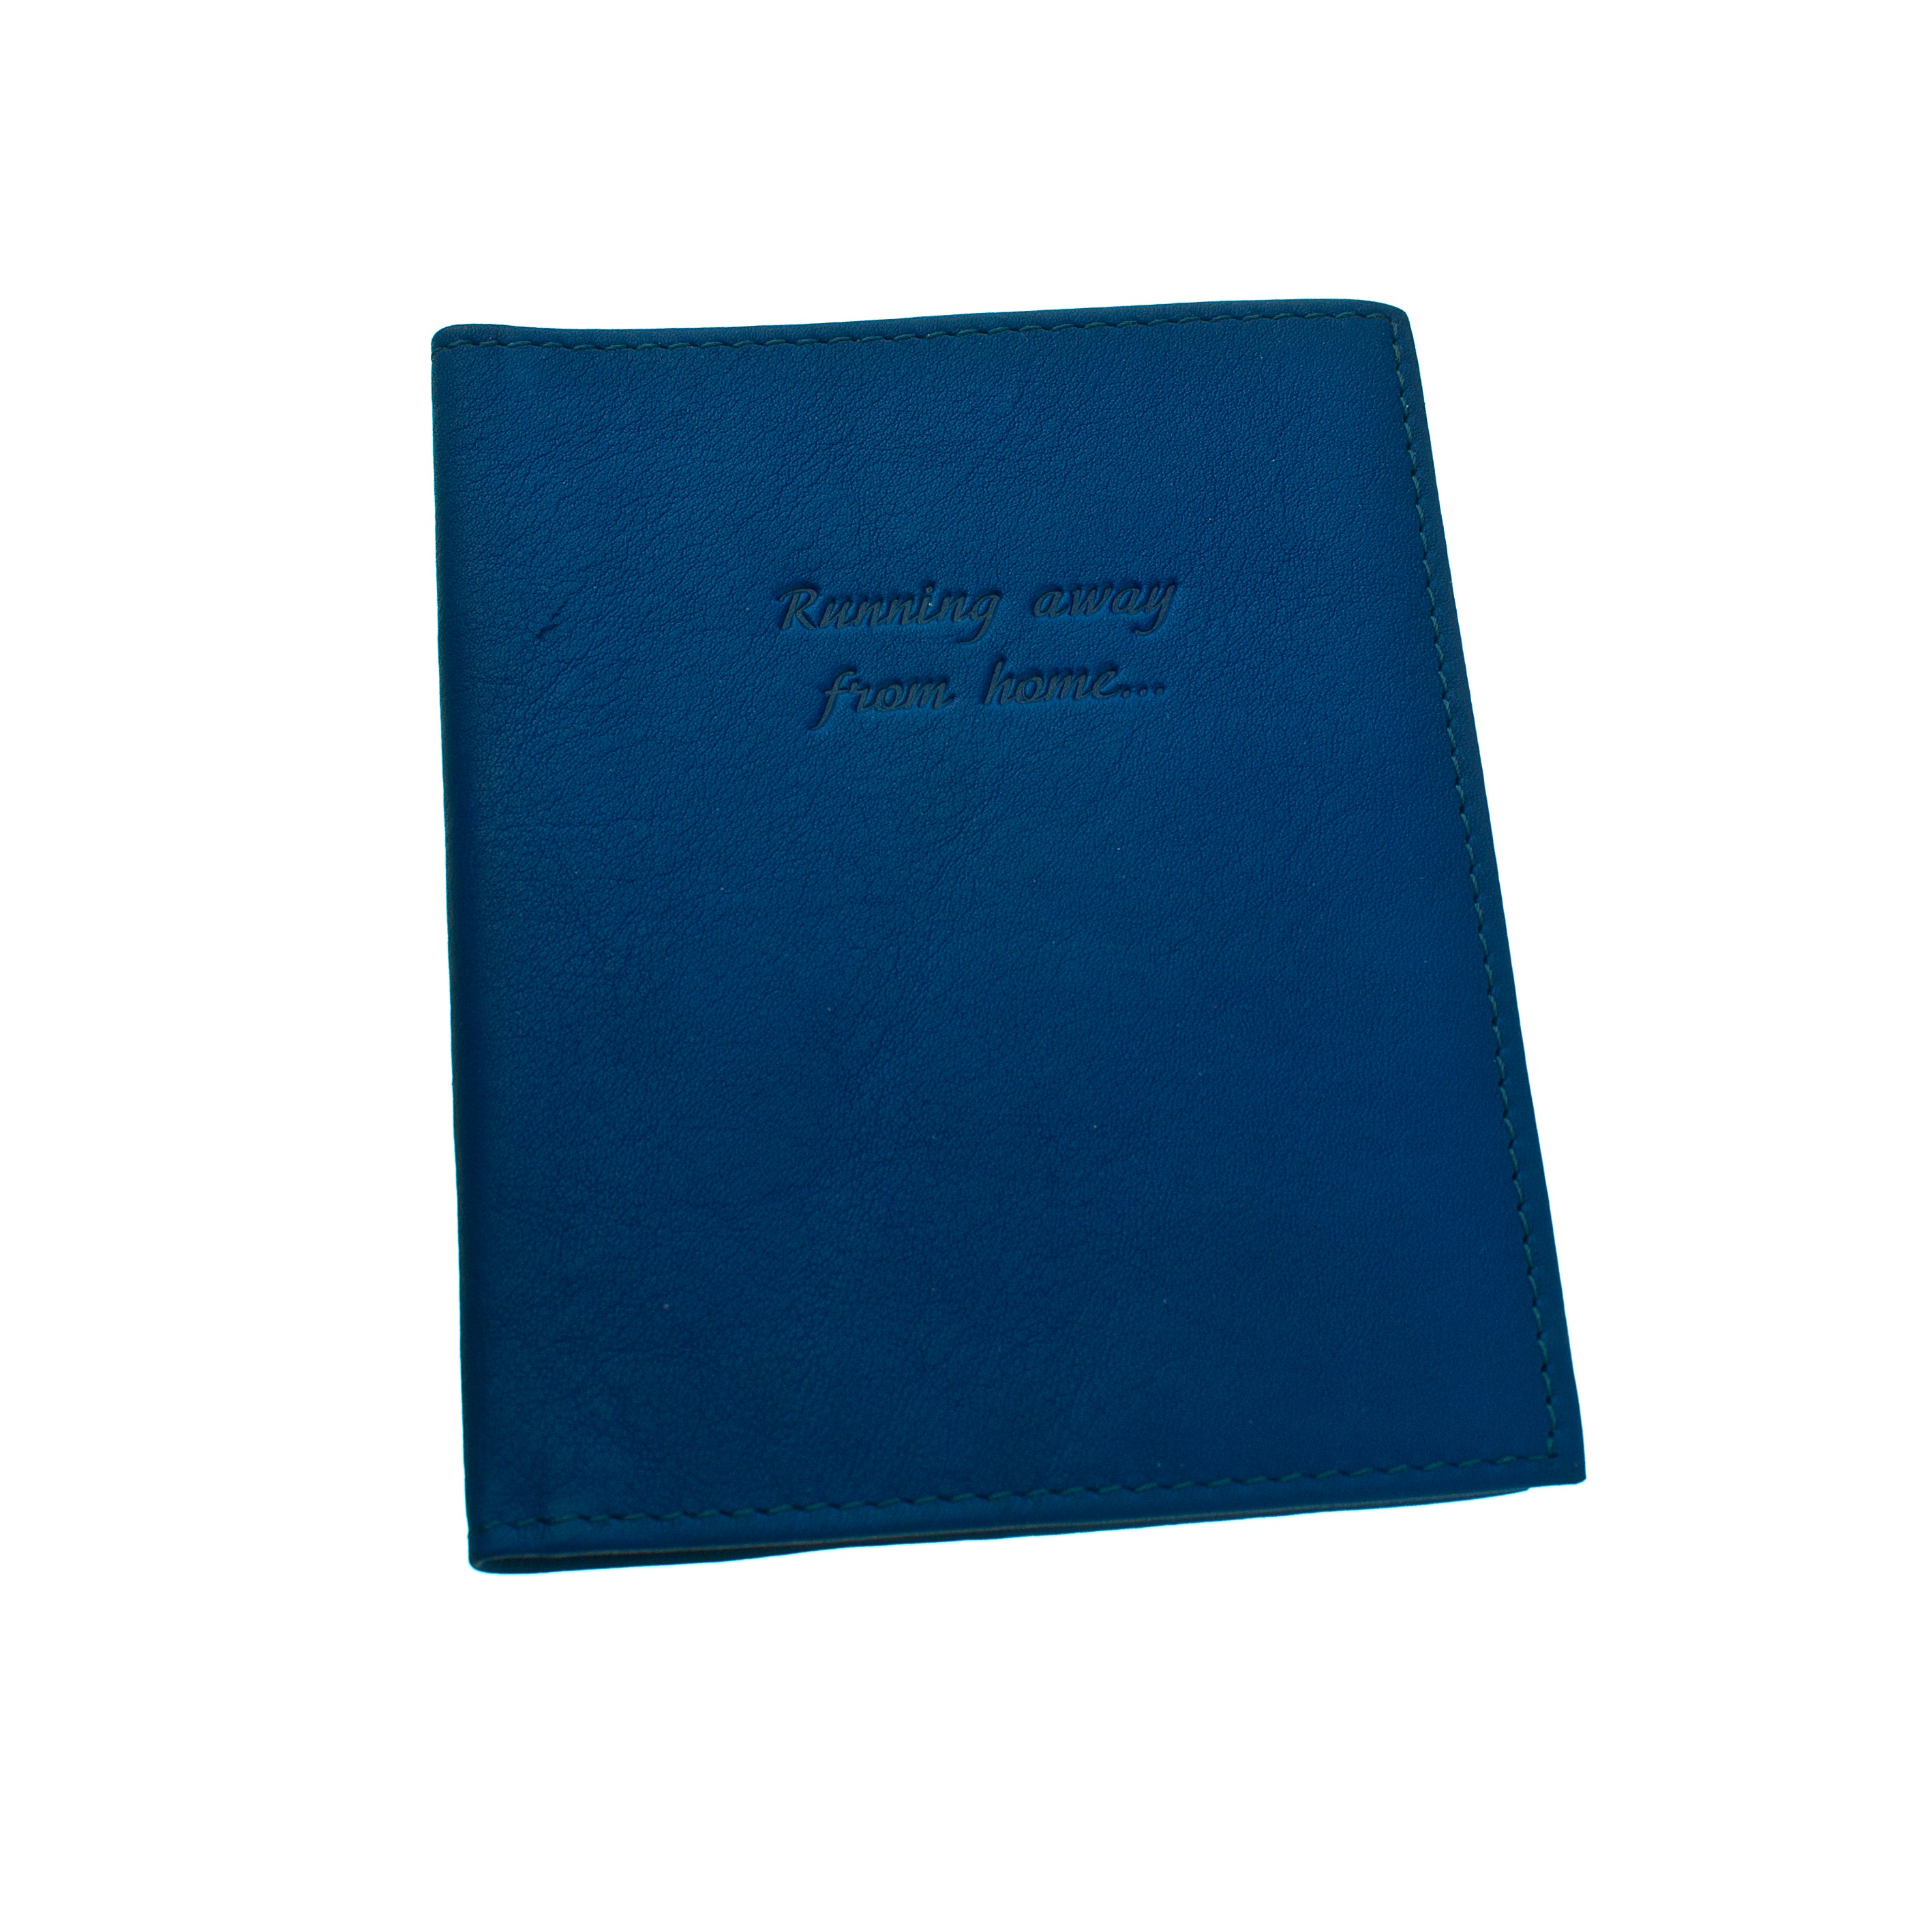 Royal Blue genuine leather passport cover case wallet sd1twenty5